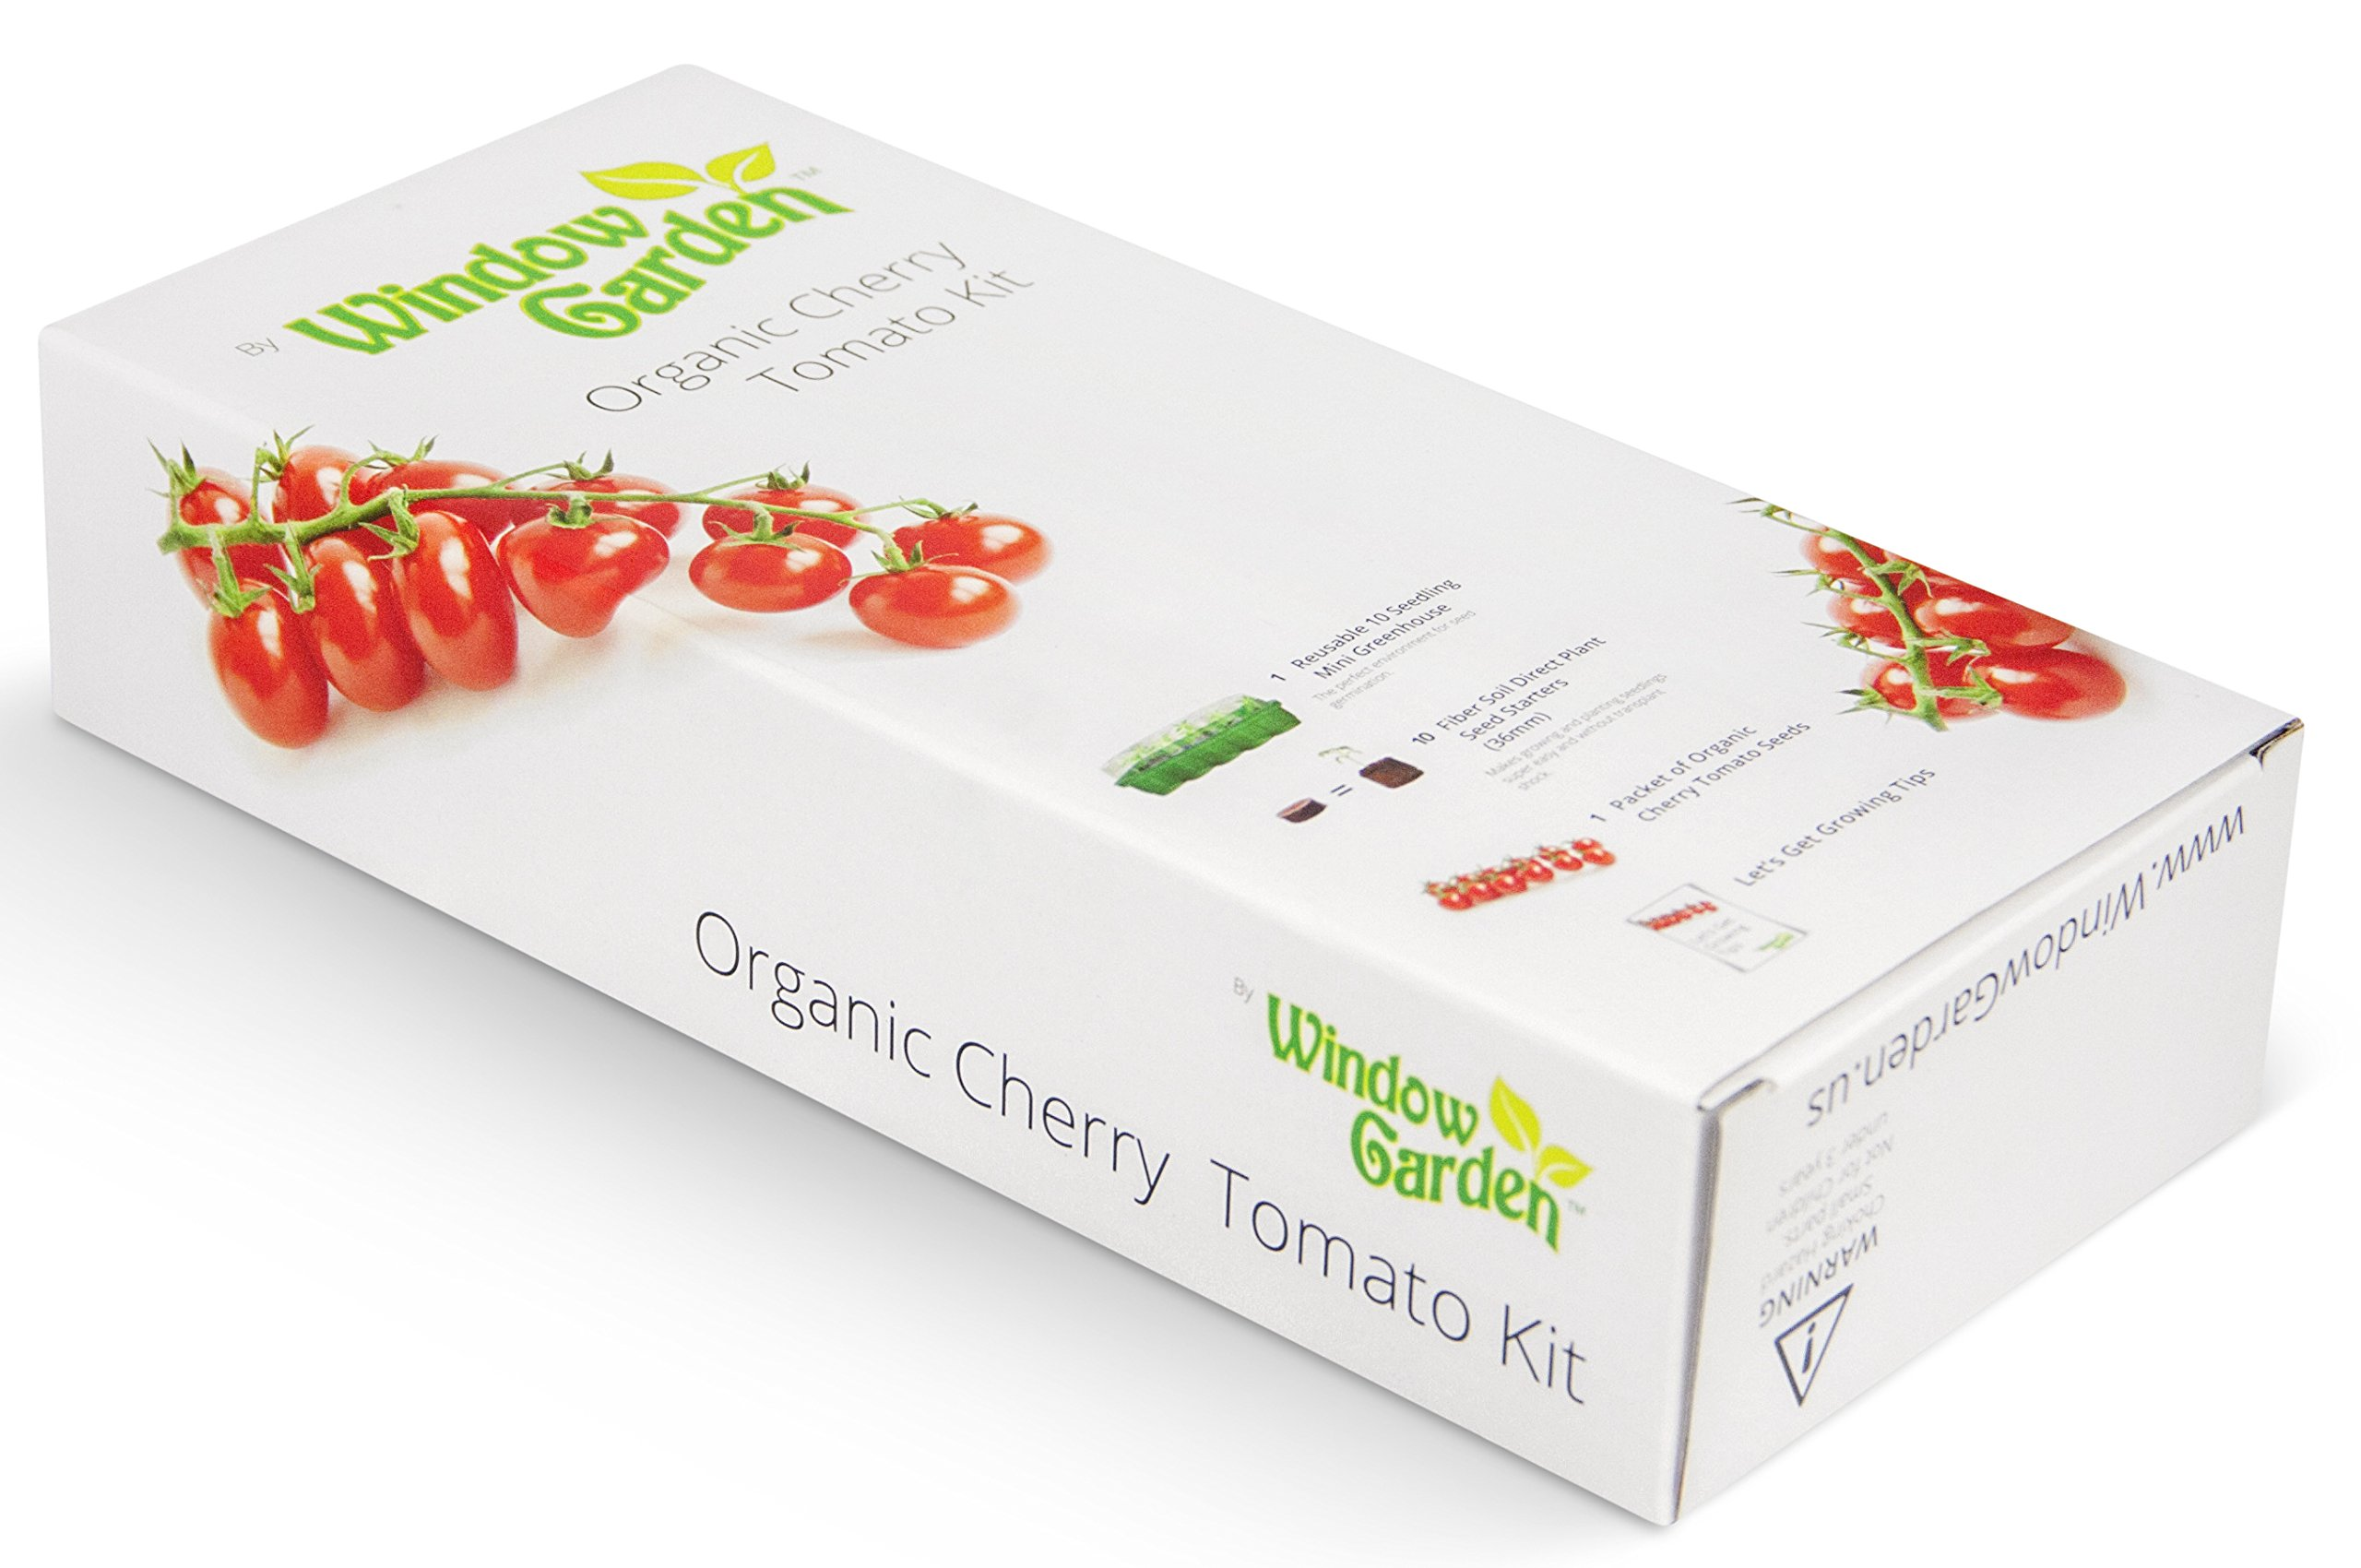 Window Garden Organic Cherry Tomato Grow Kit - Easy To Grow Vegetable Seed Kit, Includes a 10 Cavity Mini Greenhouse, Fiber Soil Seed Starters and Non GMO Organic Seeds. Great Gift for Anyone.